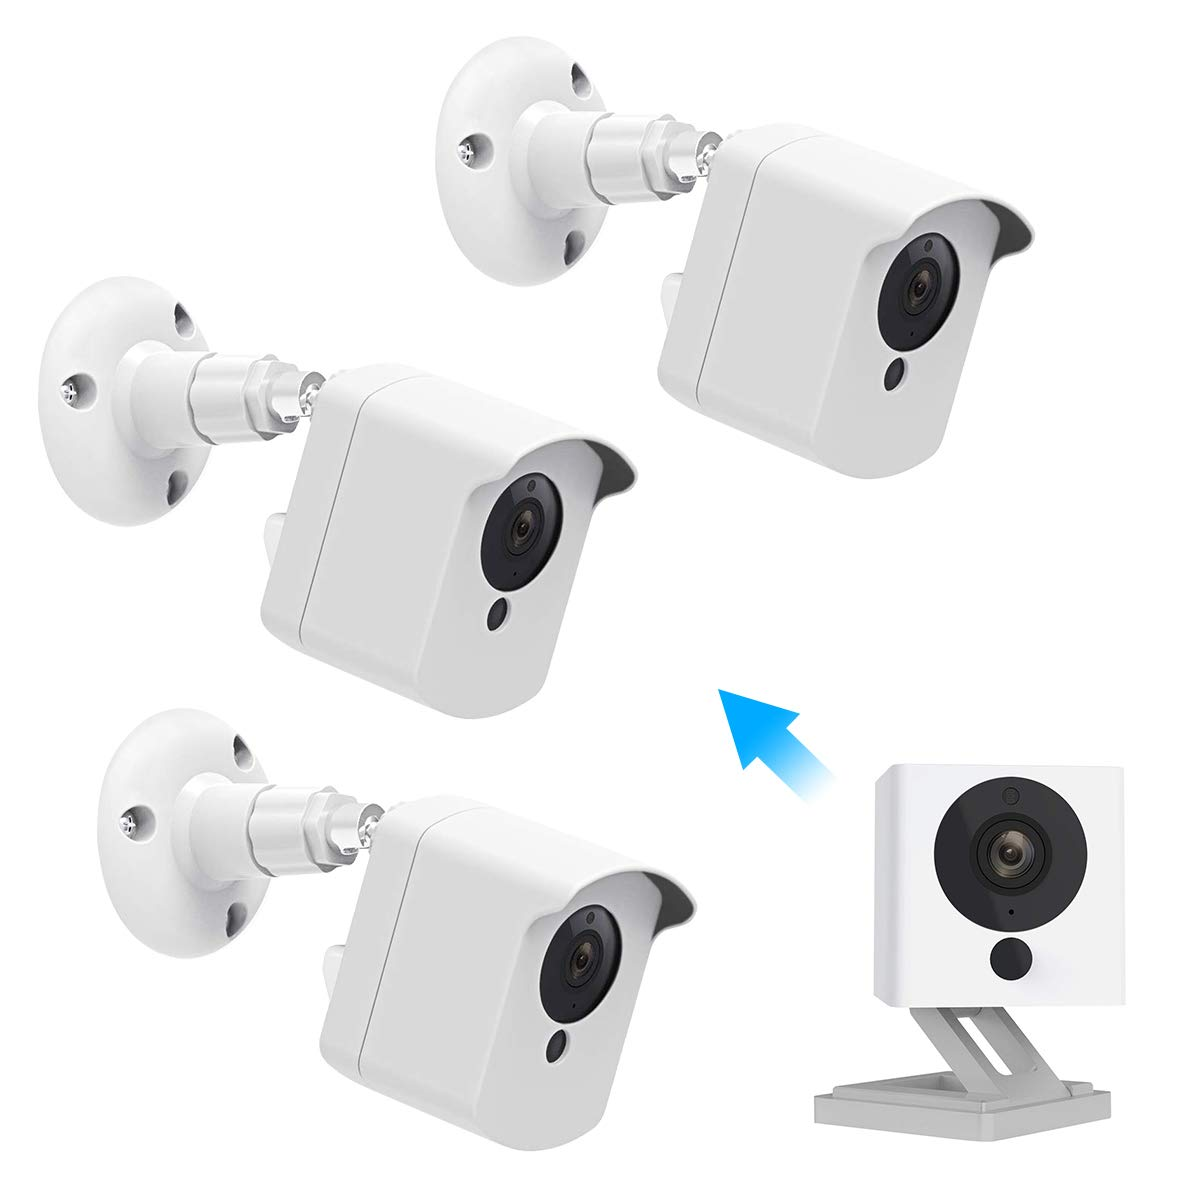 Wyze Cam Wall Mount, Caremoo Weatherproof Protective Cover with Adjustable Mount for Wyze Cam V2 Camera, Indoor/Outdoor Use (White, 3 Pack) by Caremoo